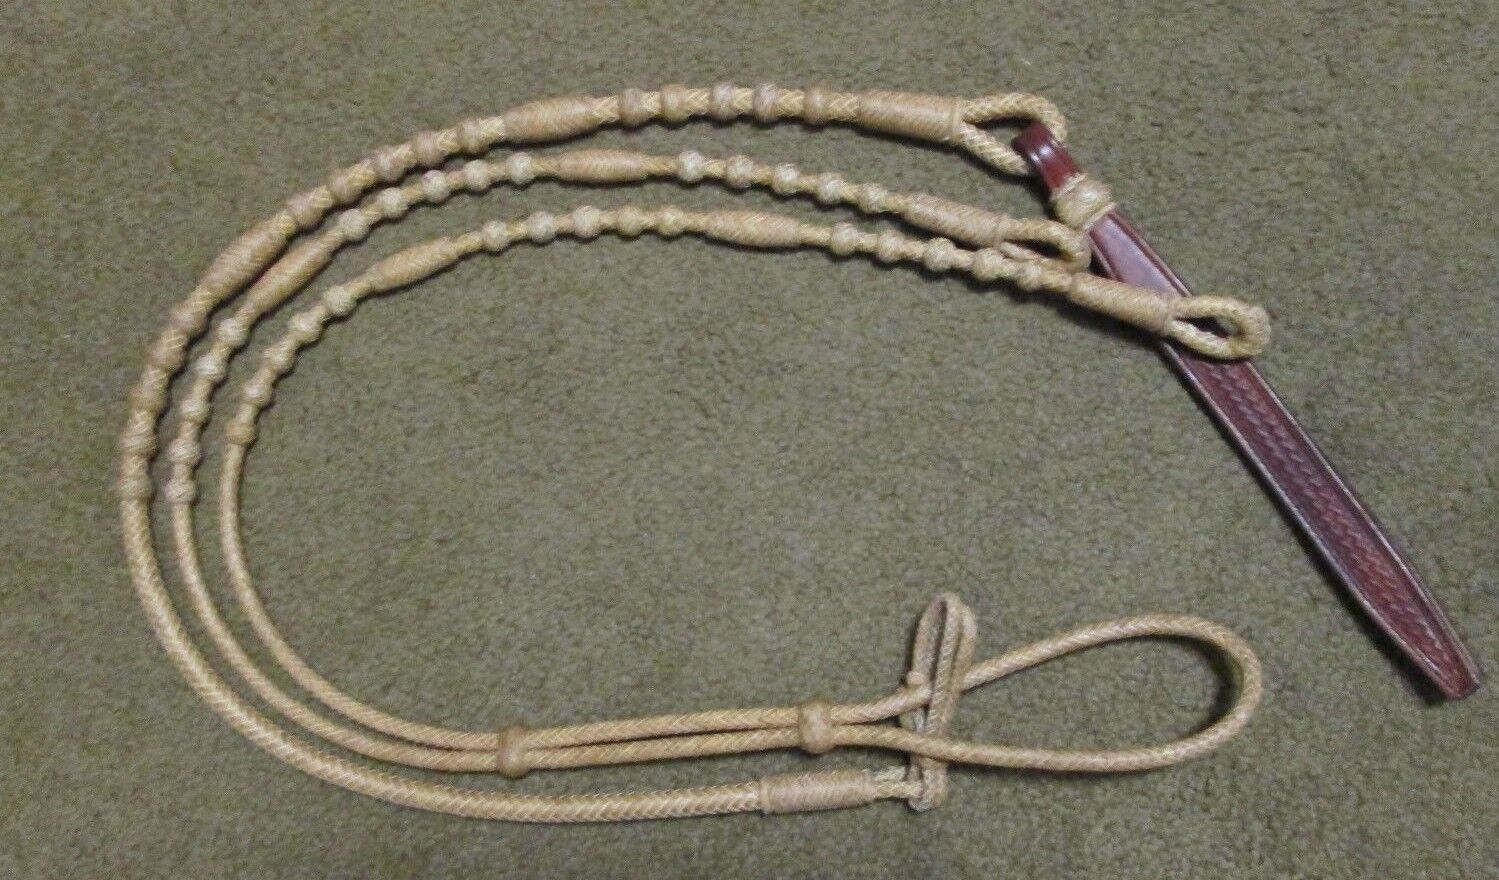 Romal Reins - Oklahoma Style - 12 plt. Short 42  without rein connectors